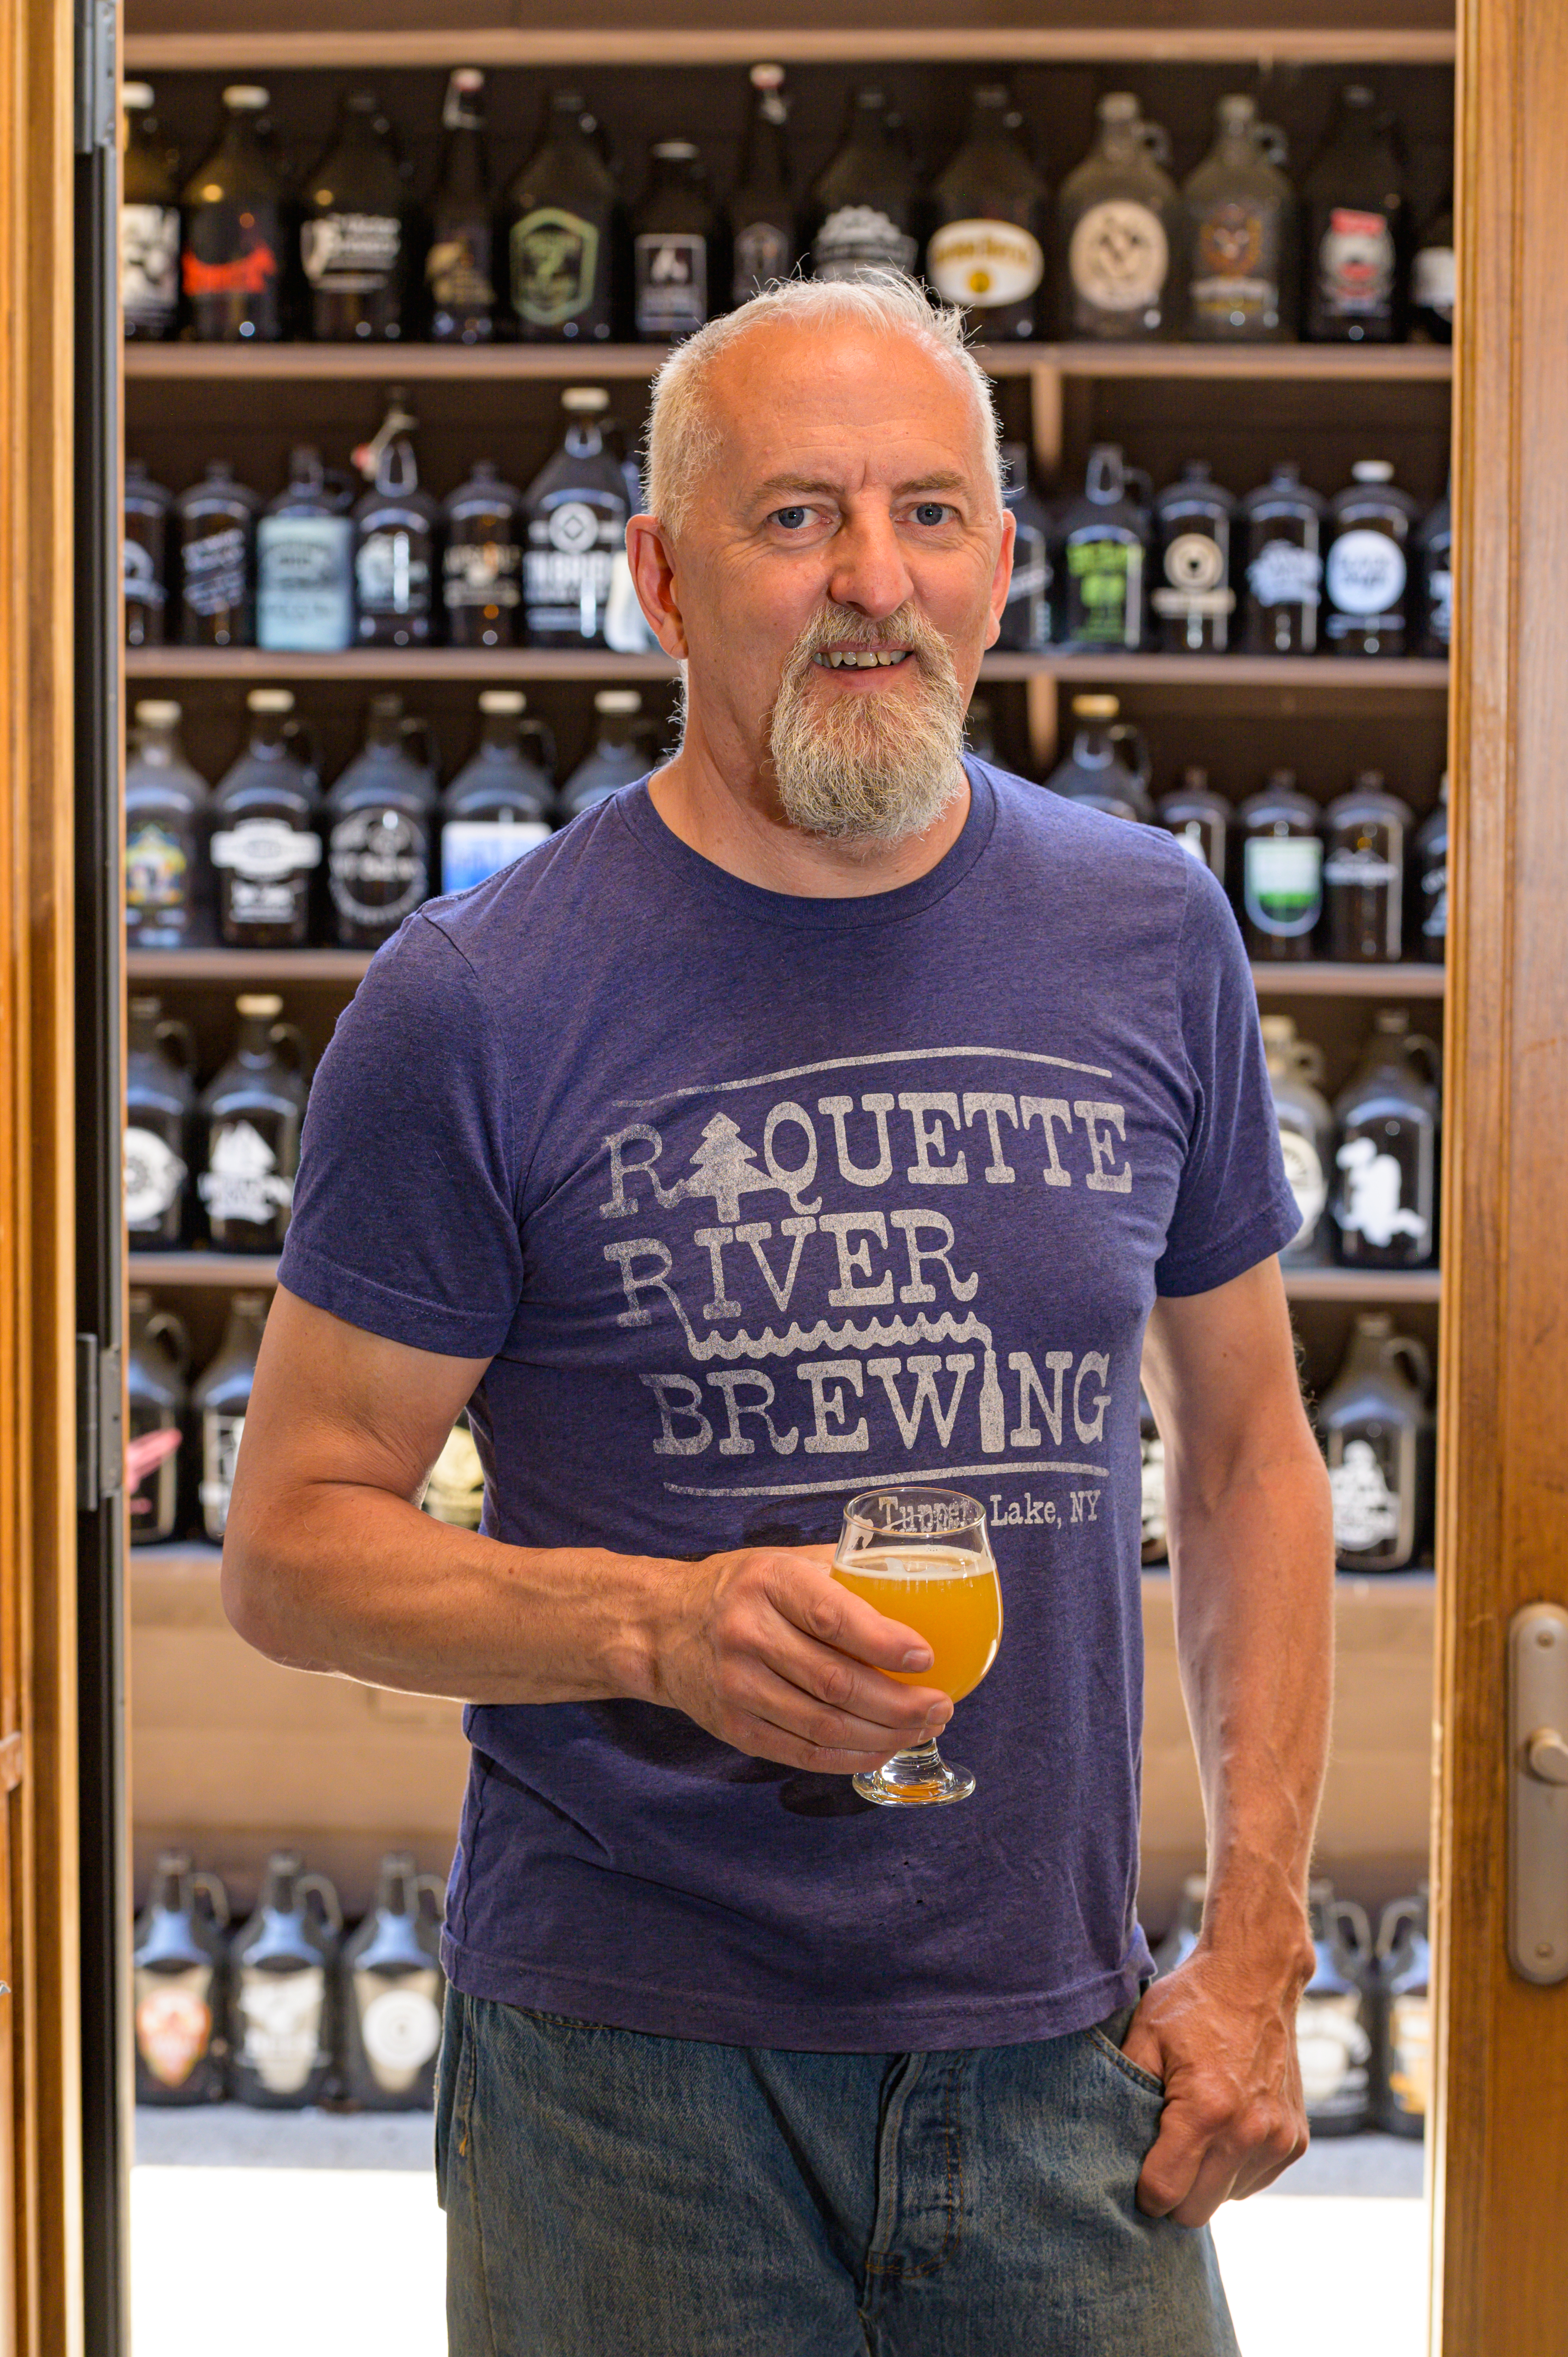 The co-owner of Raquette River Brewing, Mark Jessie, stands in front of growlers while holding a beer